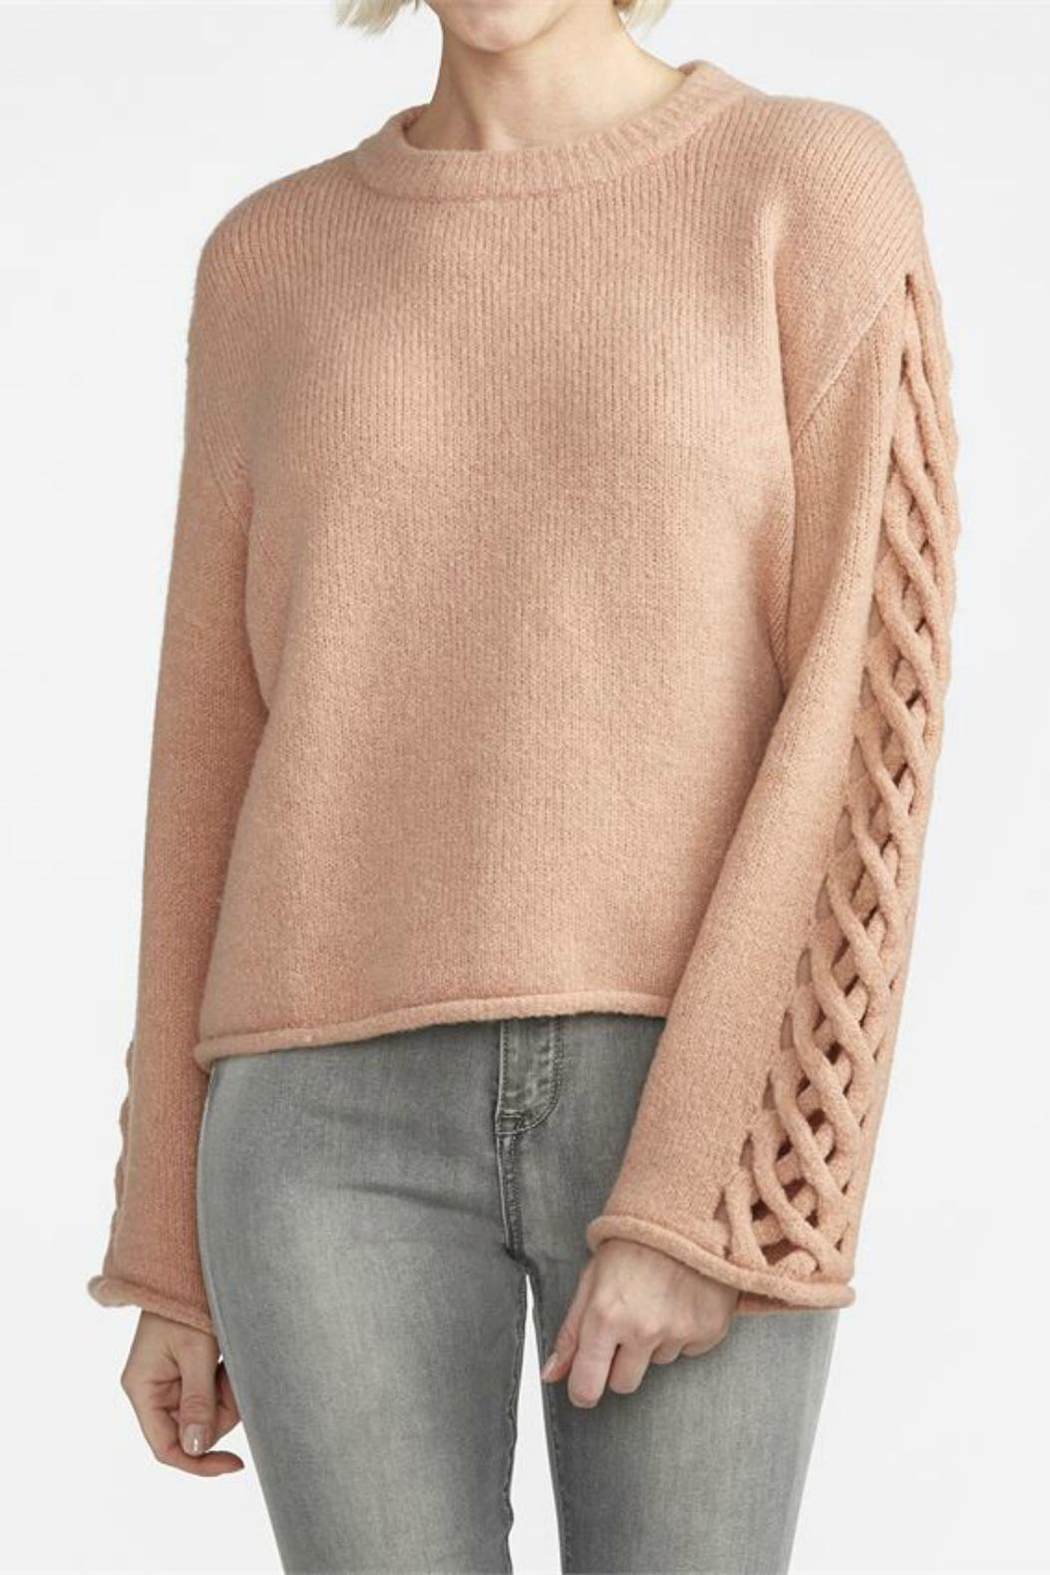 Coco + Carmen Charming Braided-Sleeve Sweater - Main Image